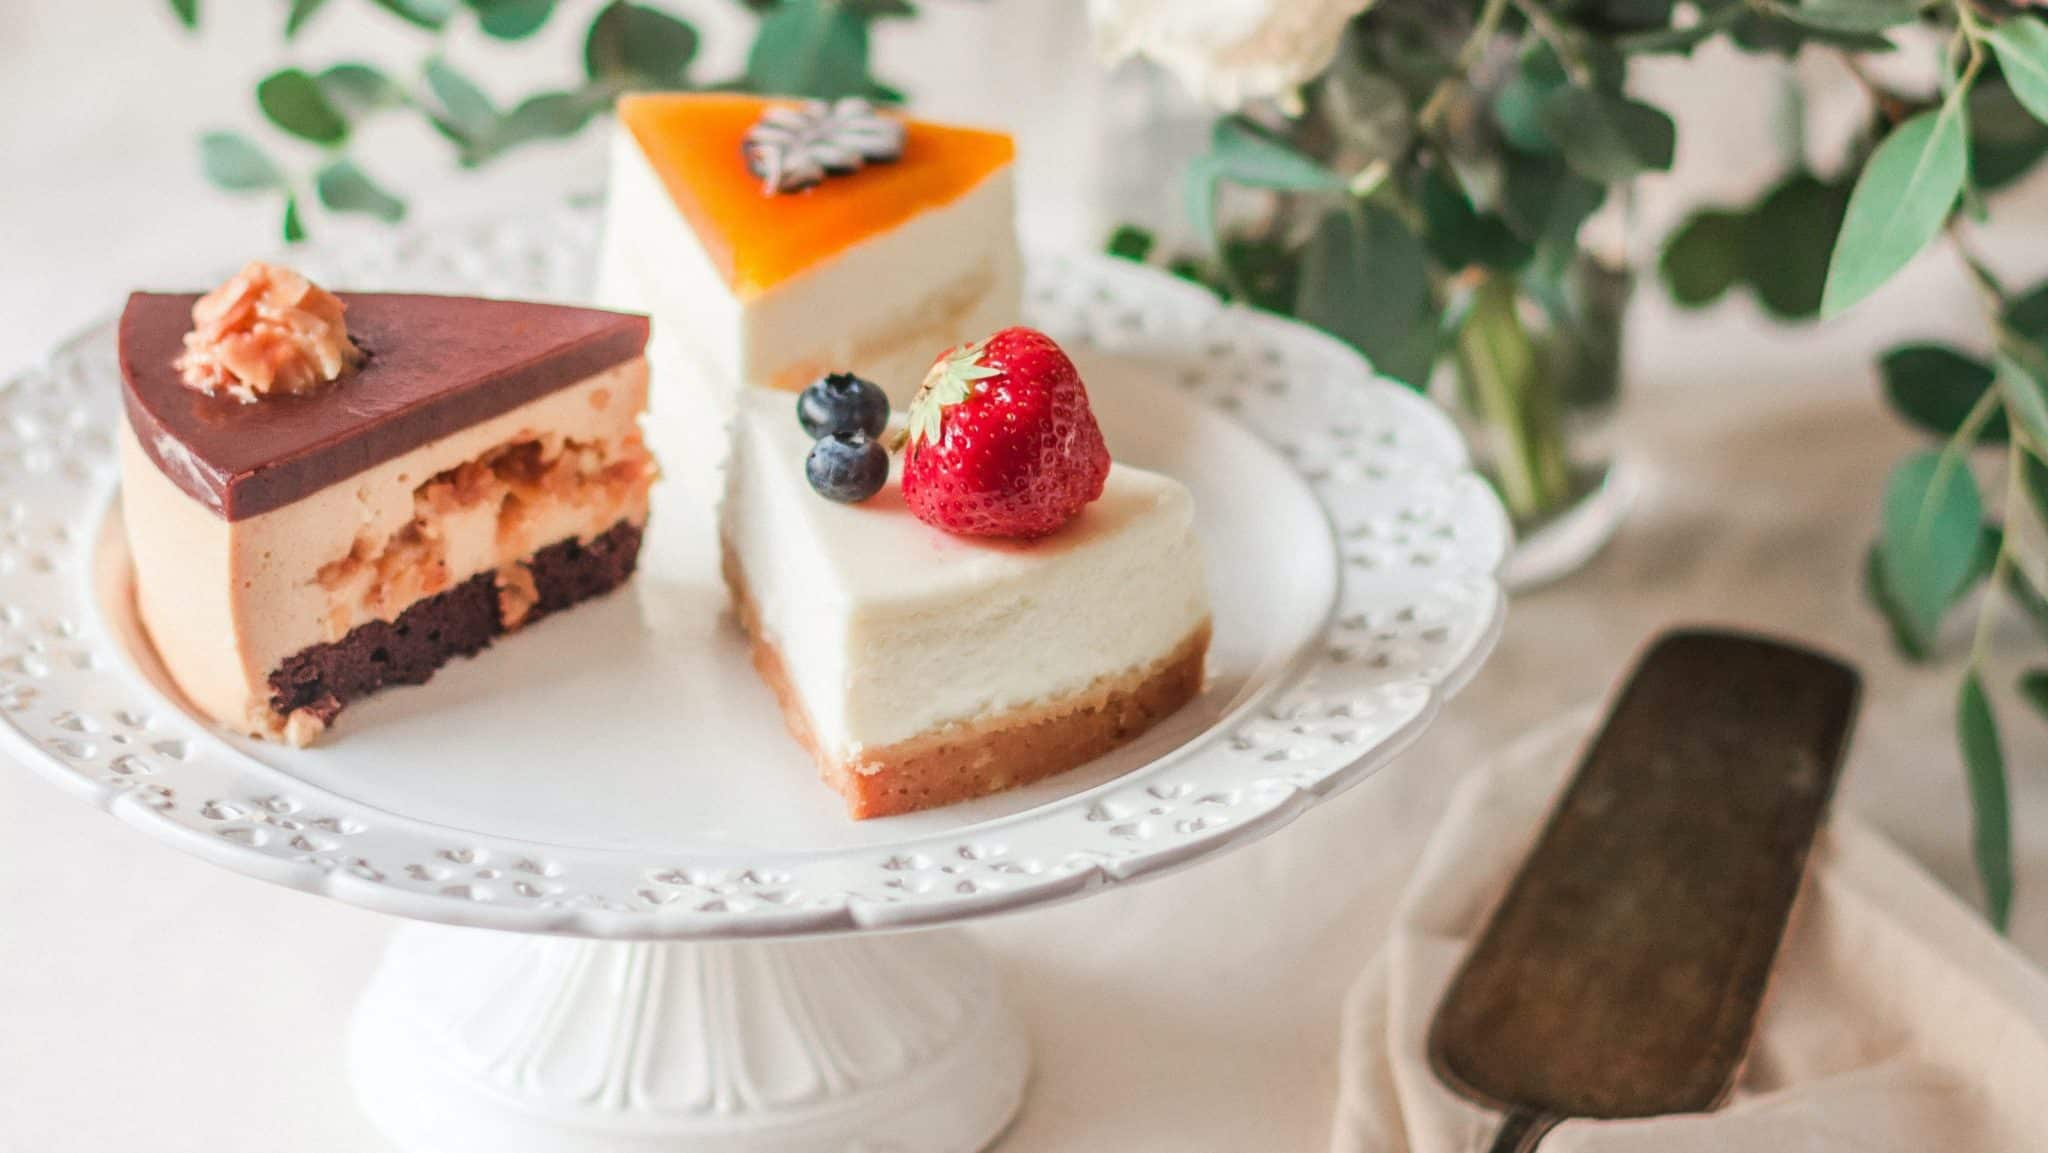 Things to Consider for Your Wedding Dessert Table